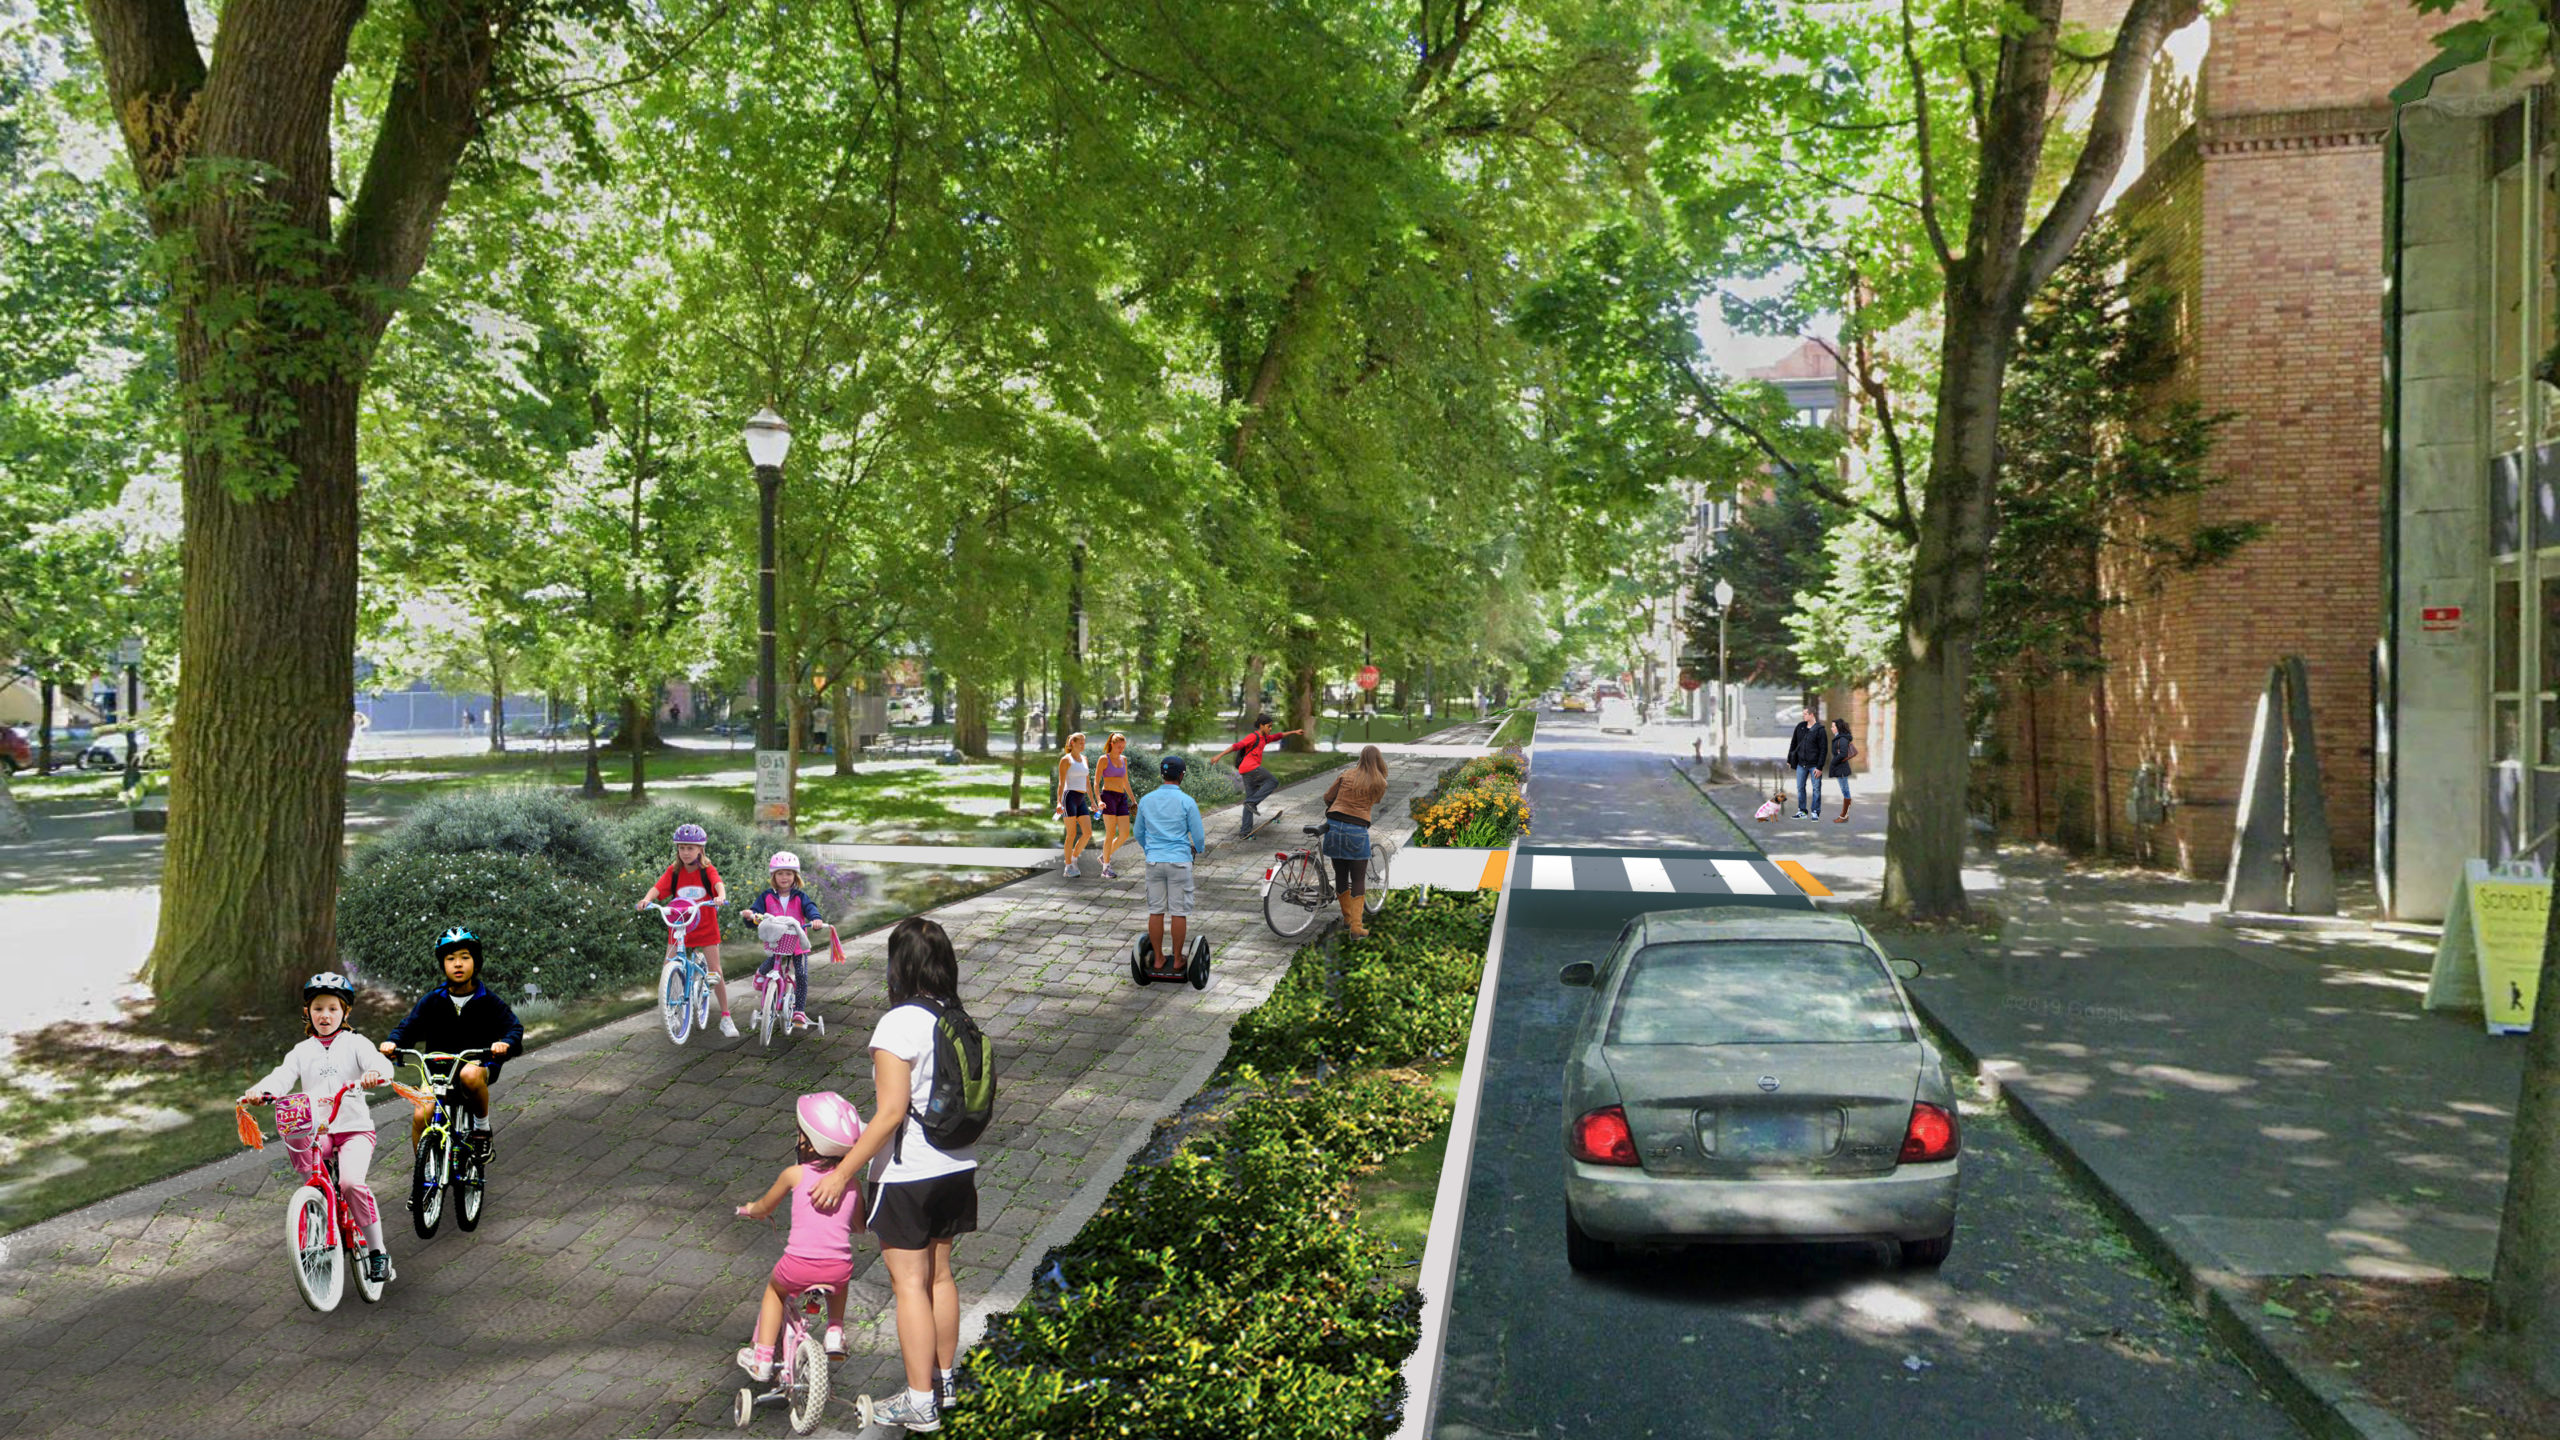 Rendering of the South Park Blocks with the proposed alignment of the Green Loop looking South.